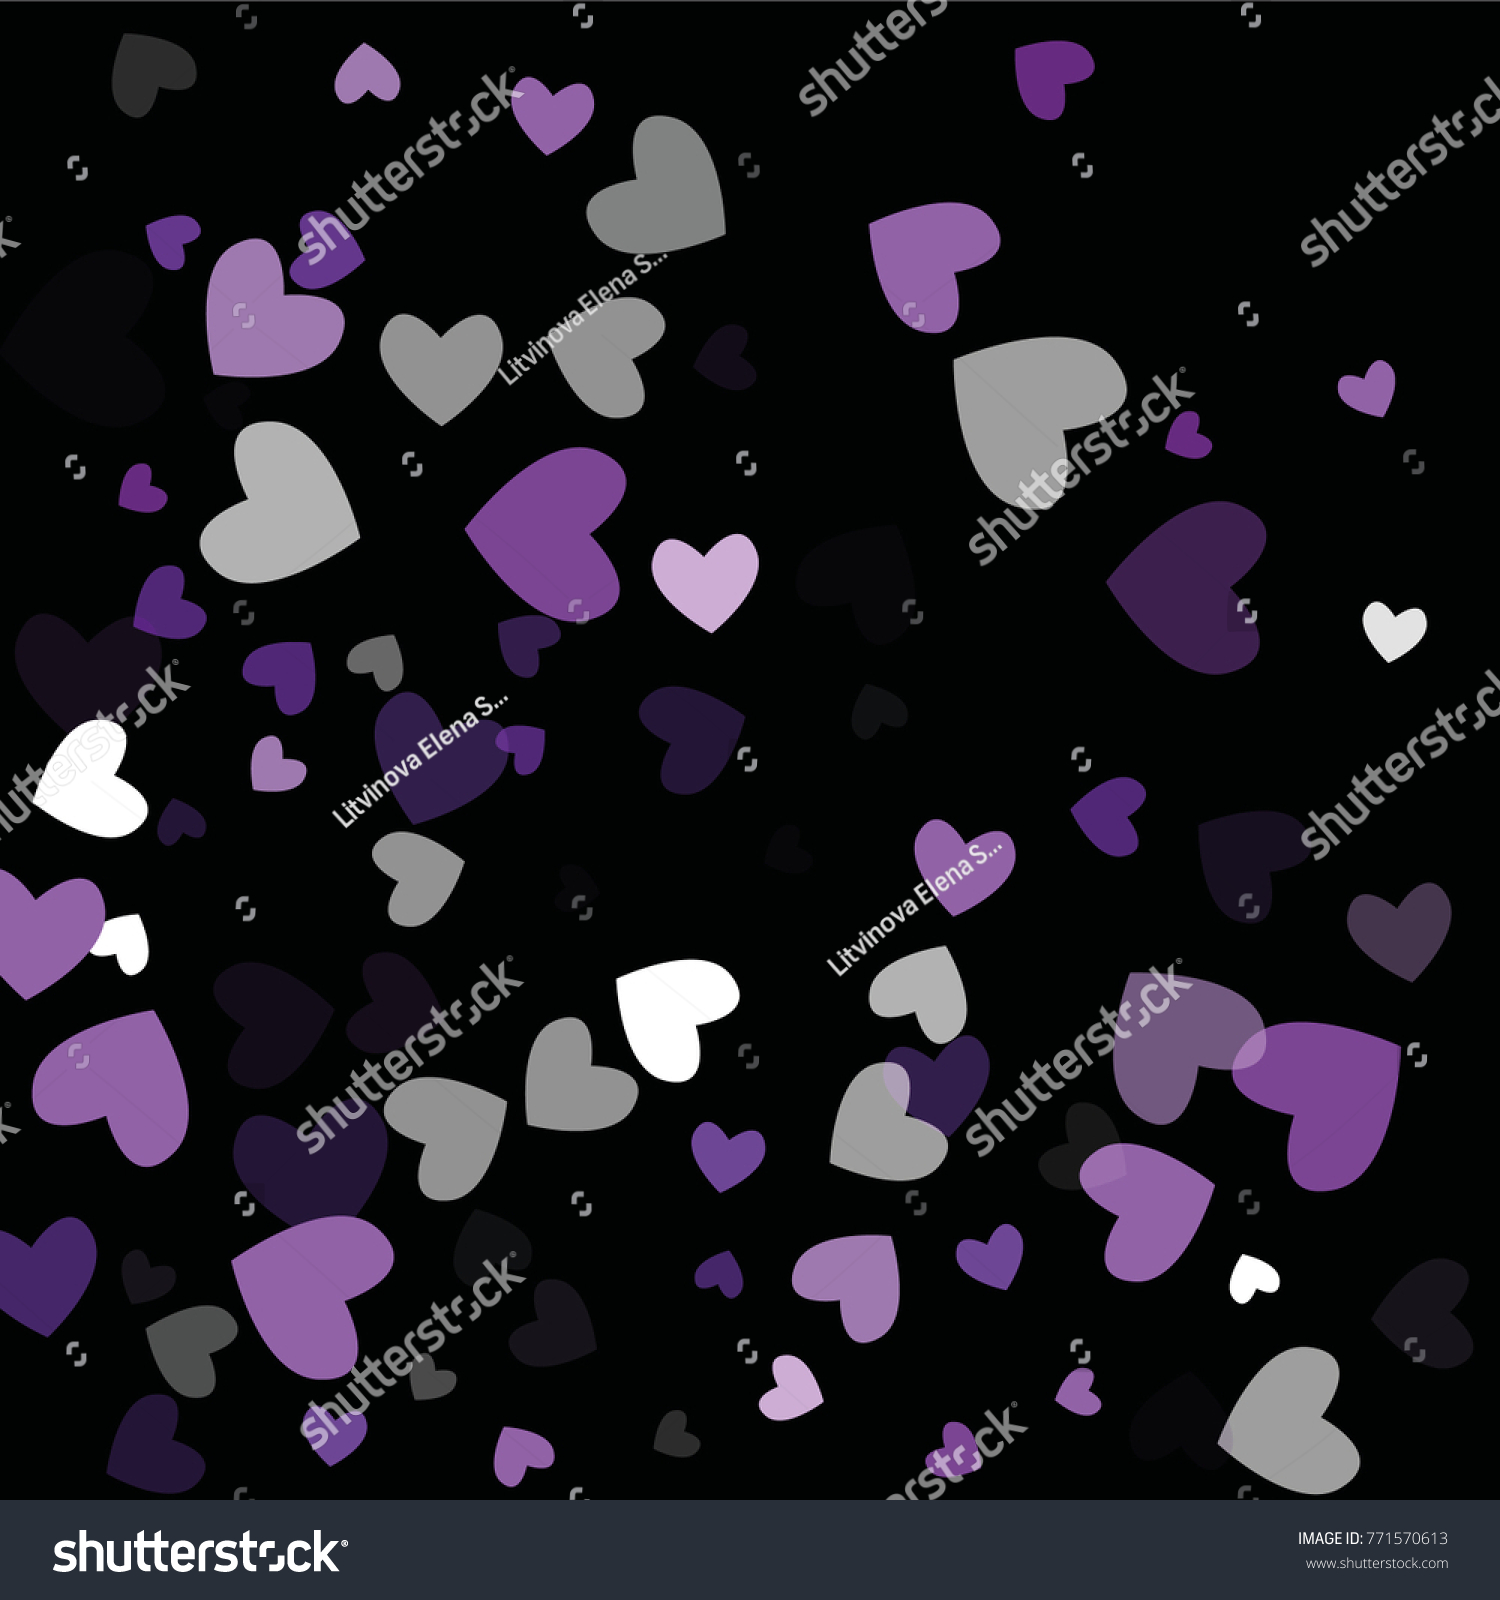 Beautiful confetti hearts falling on background stock vector beautiful confetti hearts falling on background invitation template background design greeting card poster kristyandbryce Images